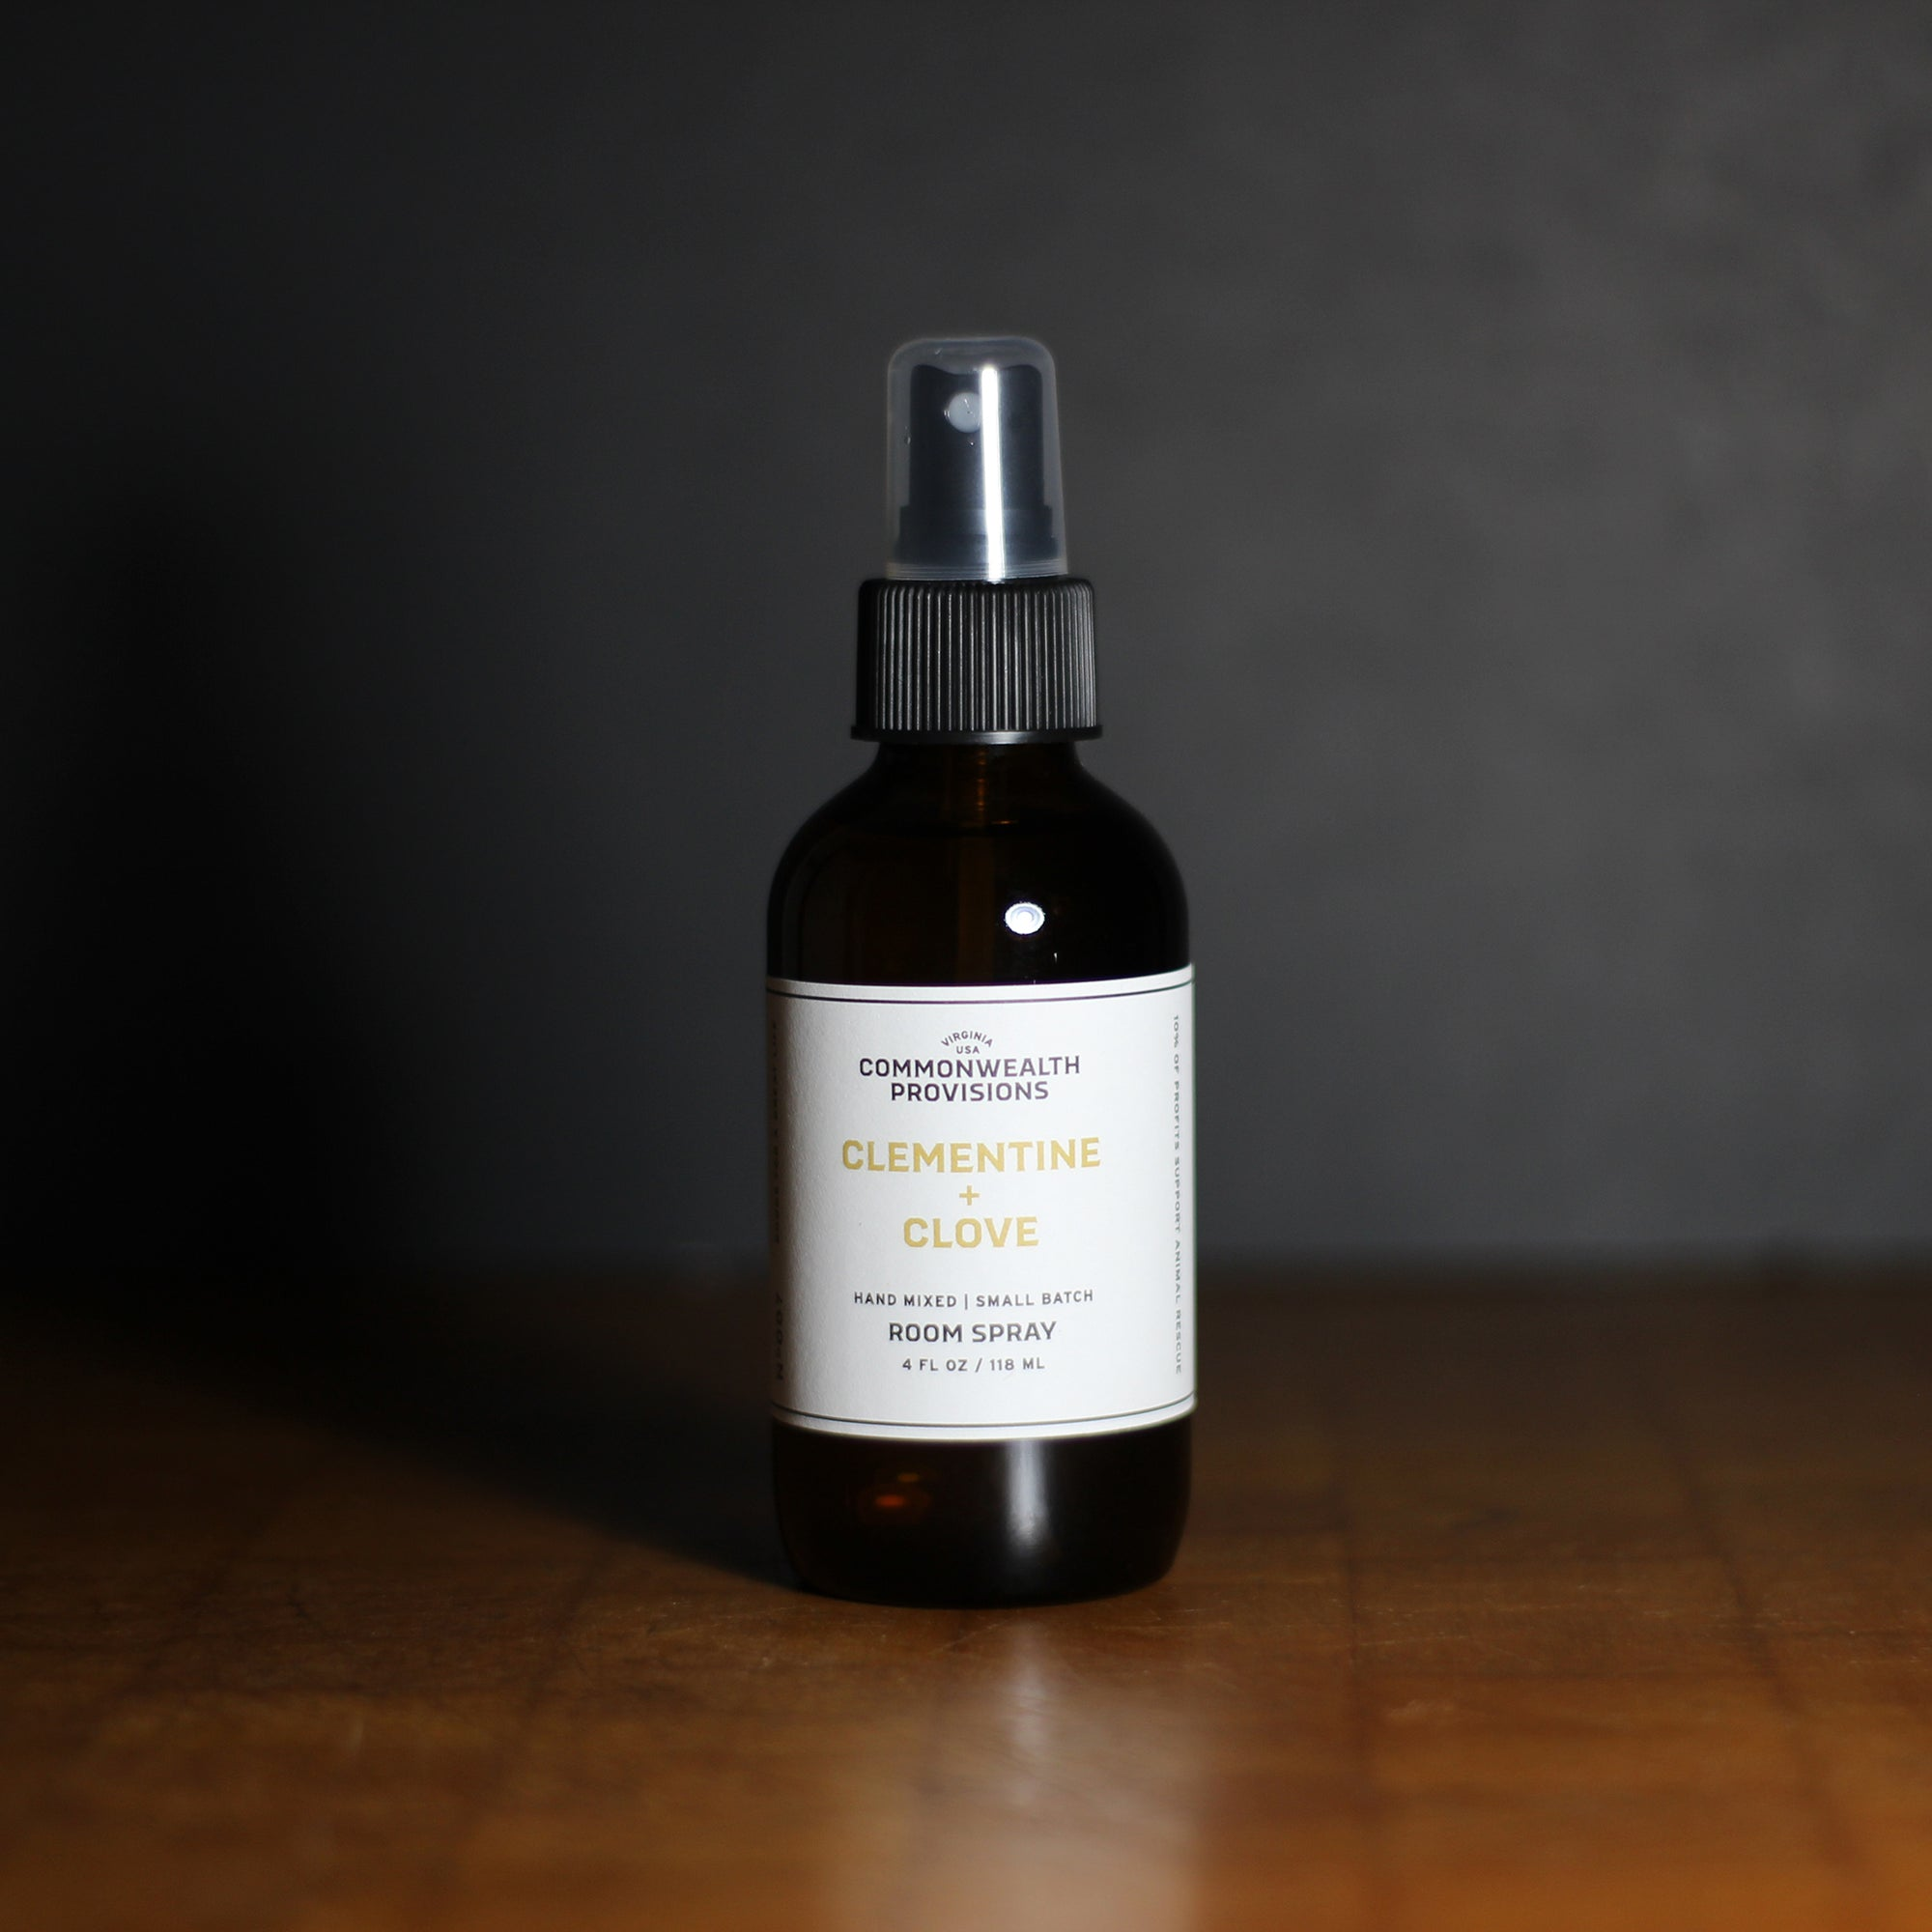 Clementine + Clove Room Spray | Commonwealth Provisions